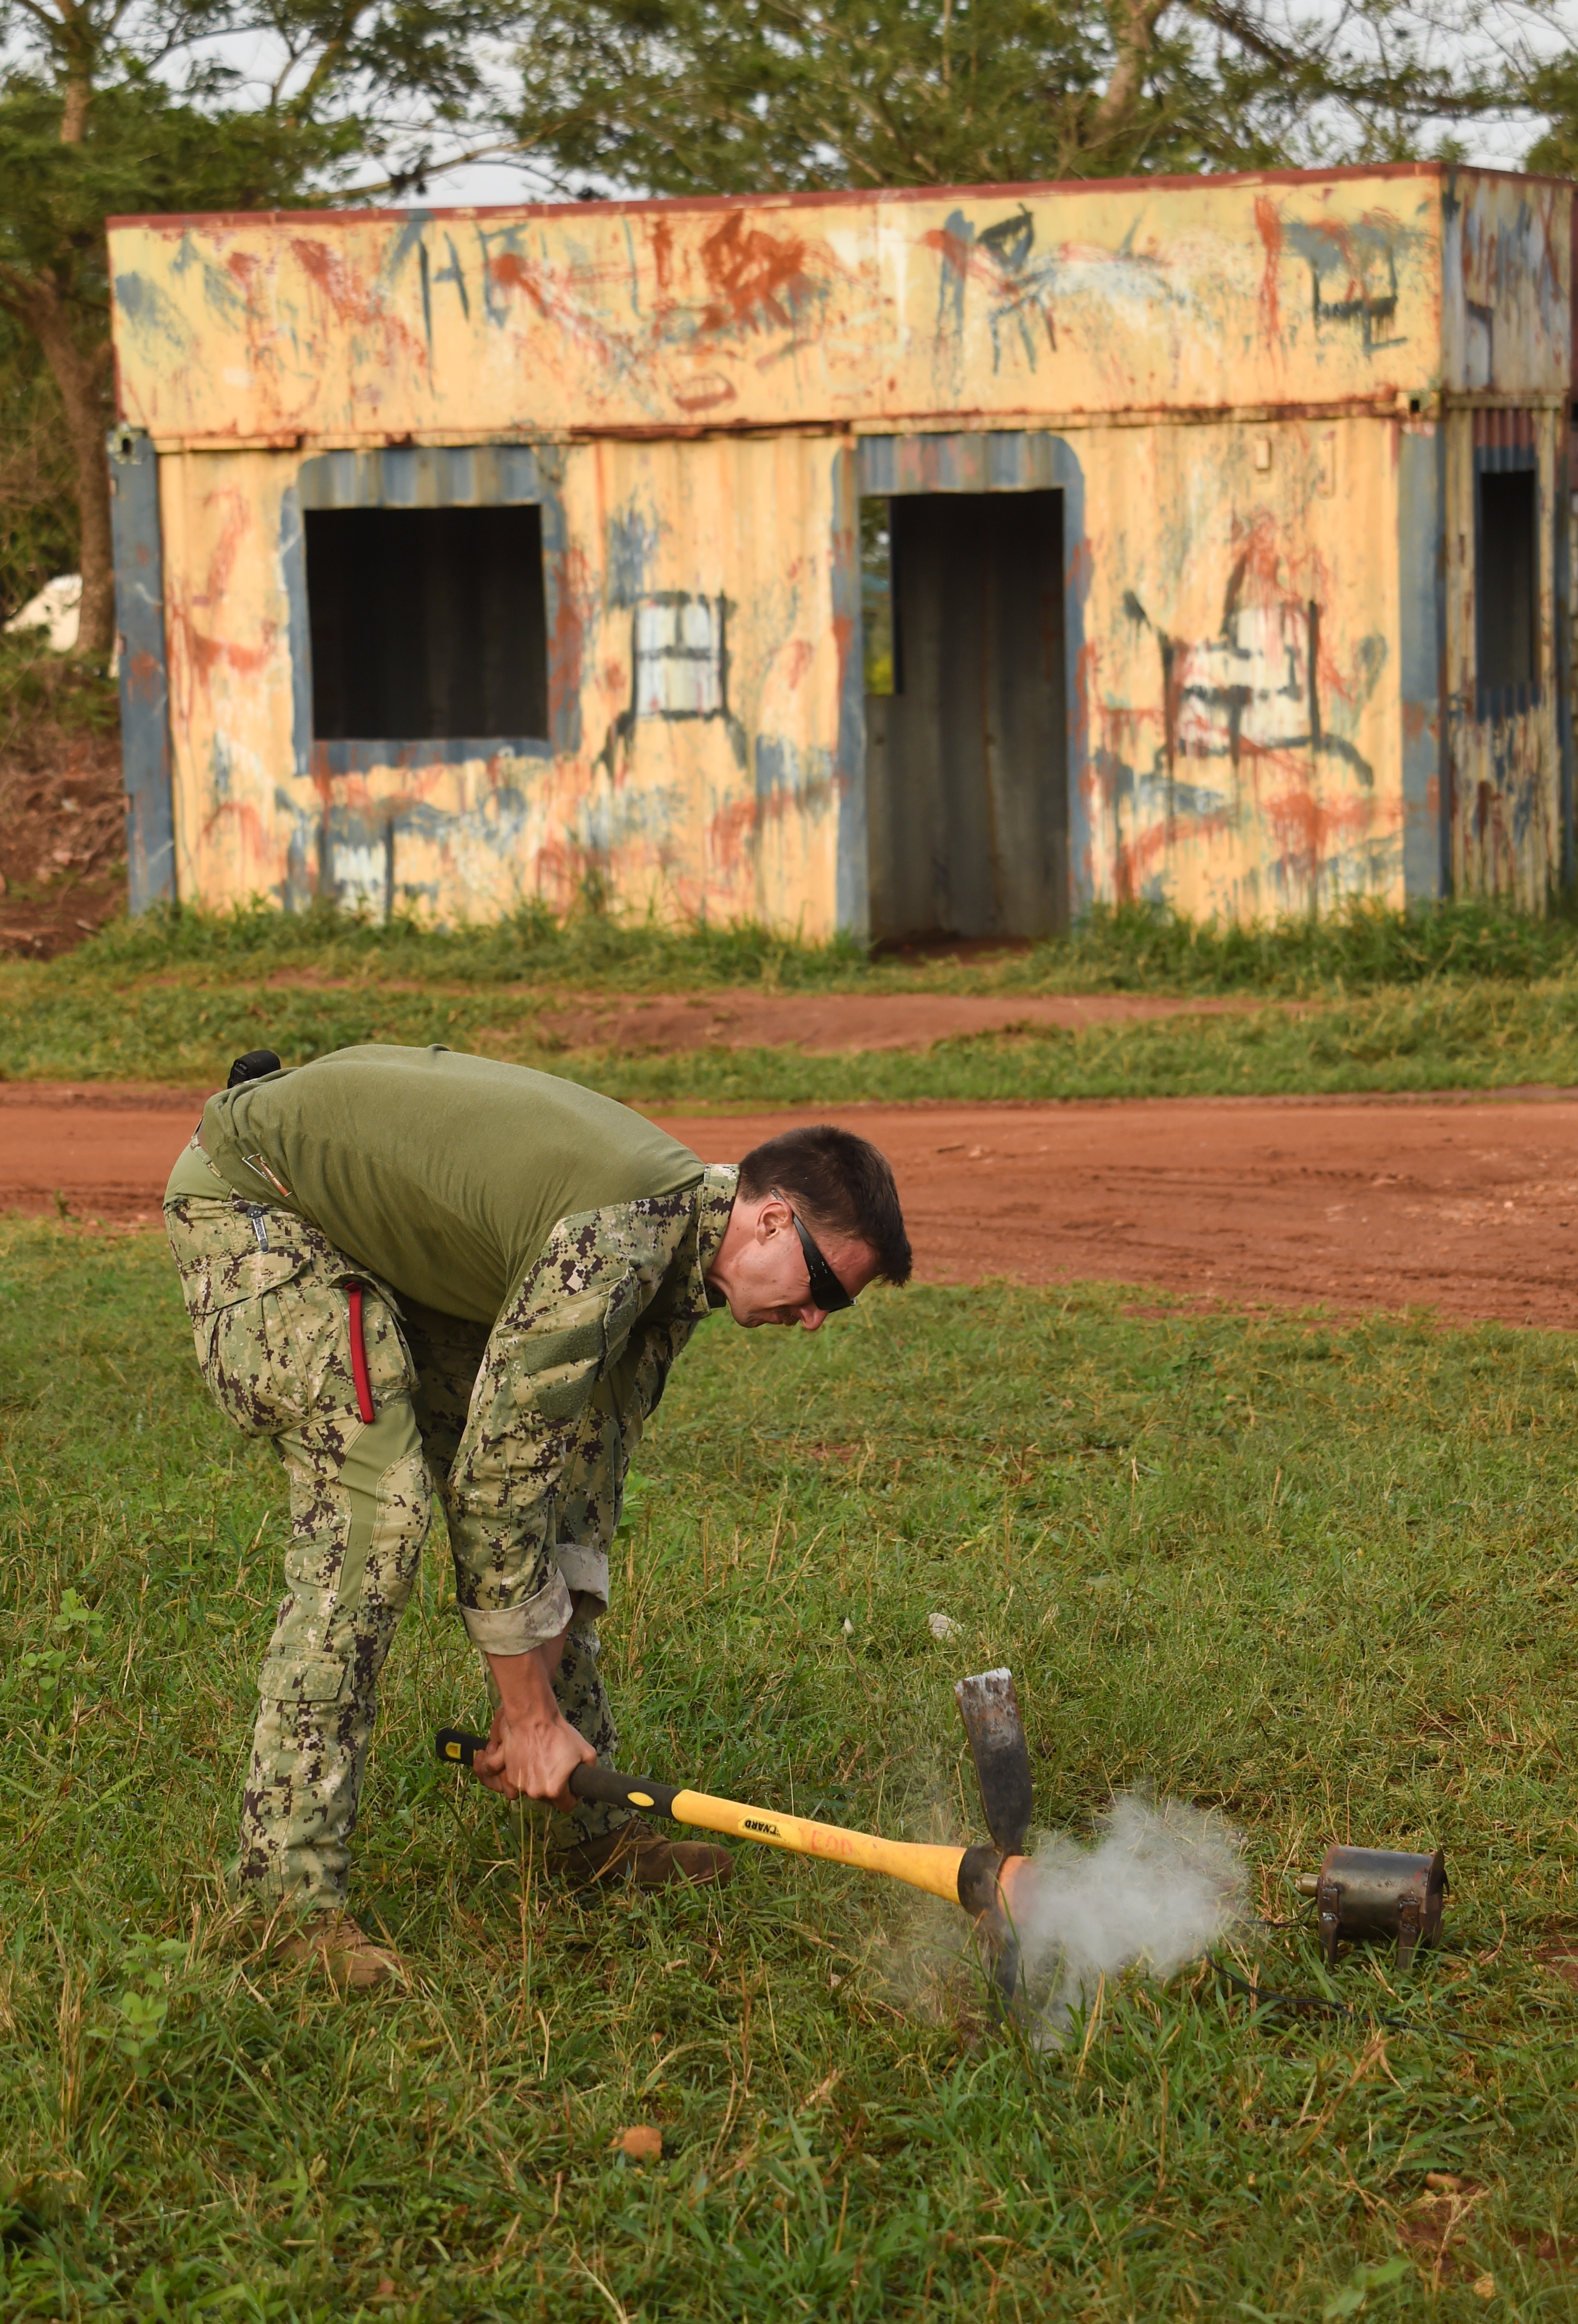 U.S. Navy Explosive Ordnance Disposal Technician 2nd Class Gary Lathrop, Combined Joint Task Force-Horn of Africa, Task Force Sparta, EOD Mobile Unit 8, creates a hole for a simulated improvised-explosive-device (IED) during counter-IED training with Uganda People's Defense Force (UPDF) members at Camp Singo, Uganda, March 6, 2017.  The training gave UPDF members a chance to locate and clear IEDs in and around buildings and along the road. (U.S. Air National Guard photo by Staff Sgt. Penny Snoozy)